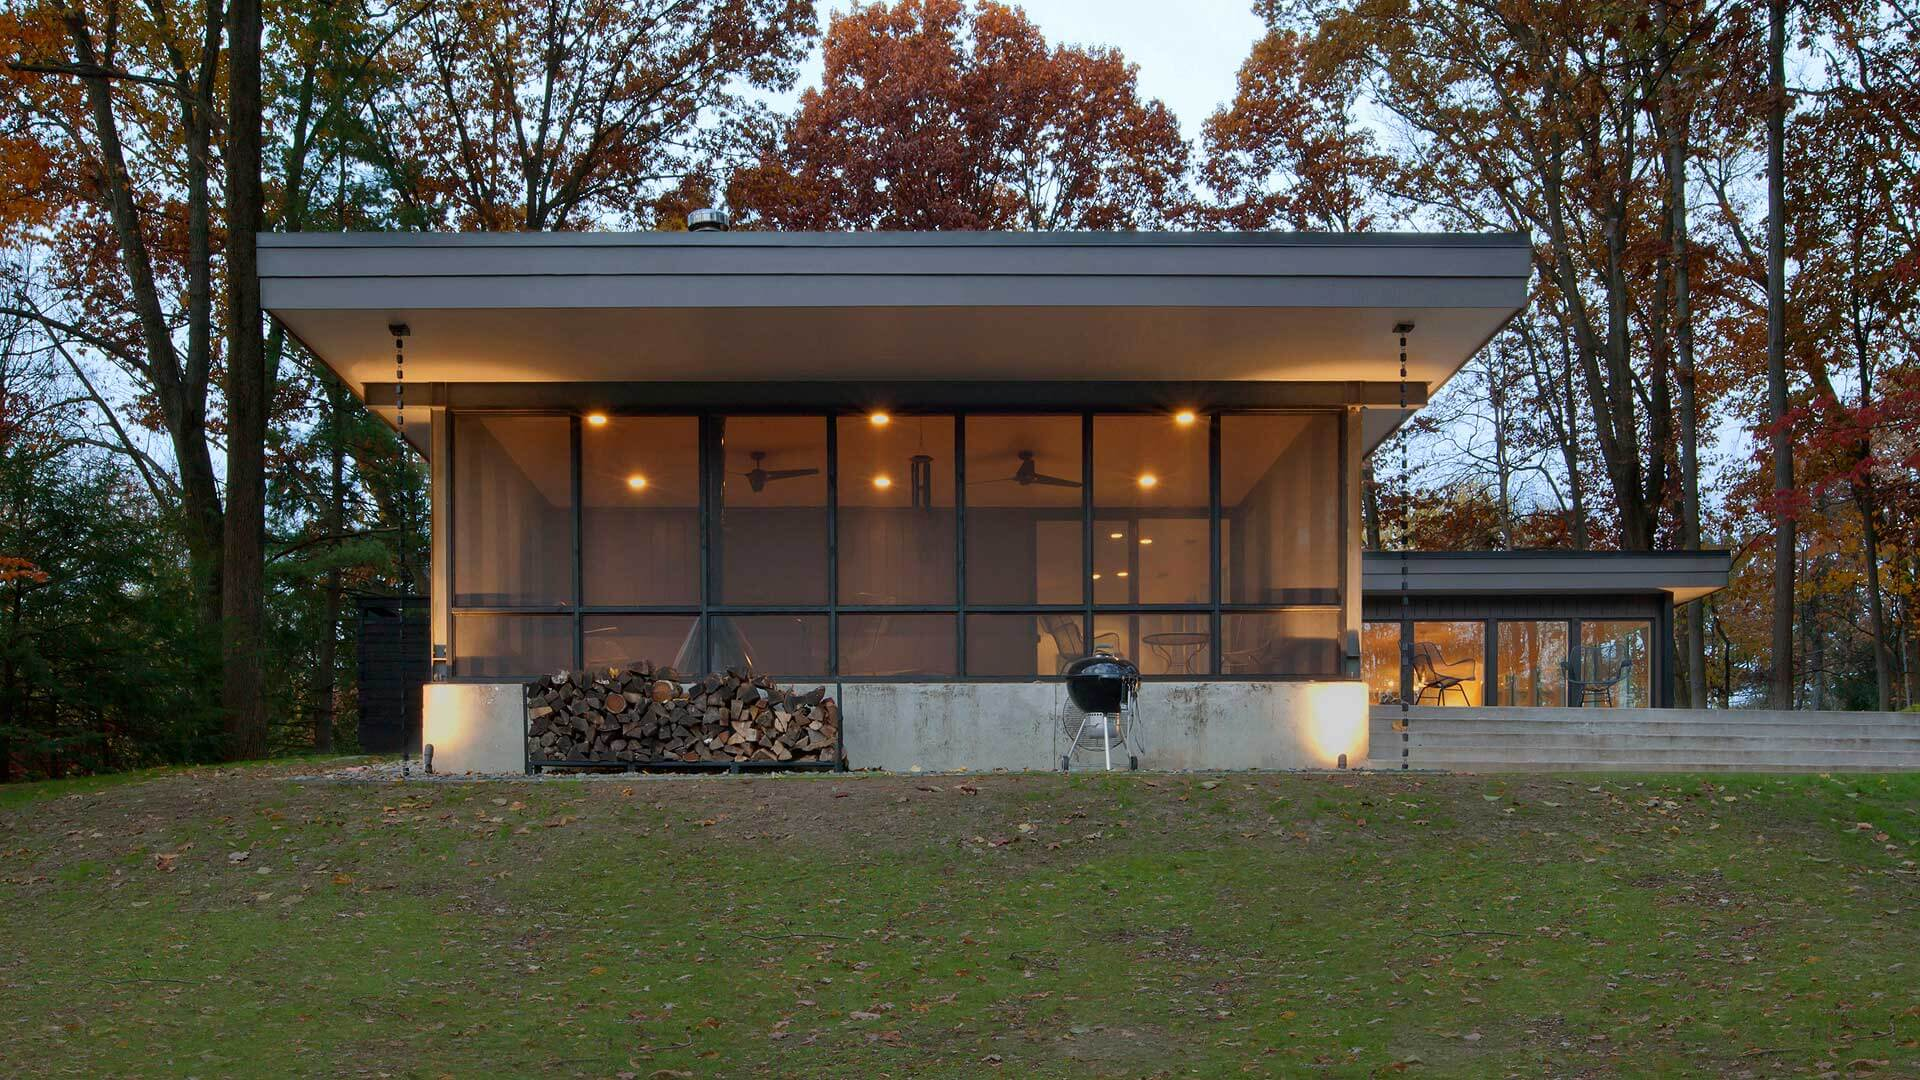 Screened Porch, Rainchain, Rain Chains, Weber Grille, Firewood, wooded site, private backyard terrace, concrete steps, steel structure, retro floating fireplace, porch ceiling fans, Midcentury Modern Renovation - 81st Street - Indianapolis, Christopher Short, Architect, HAUS Architecture